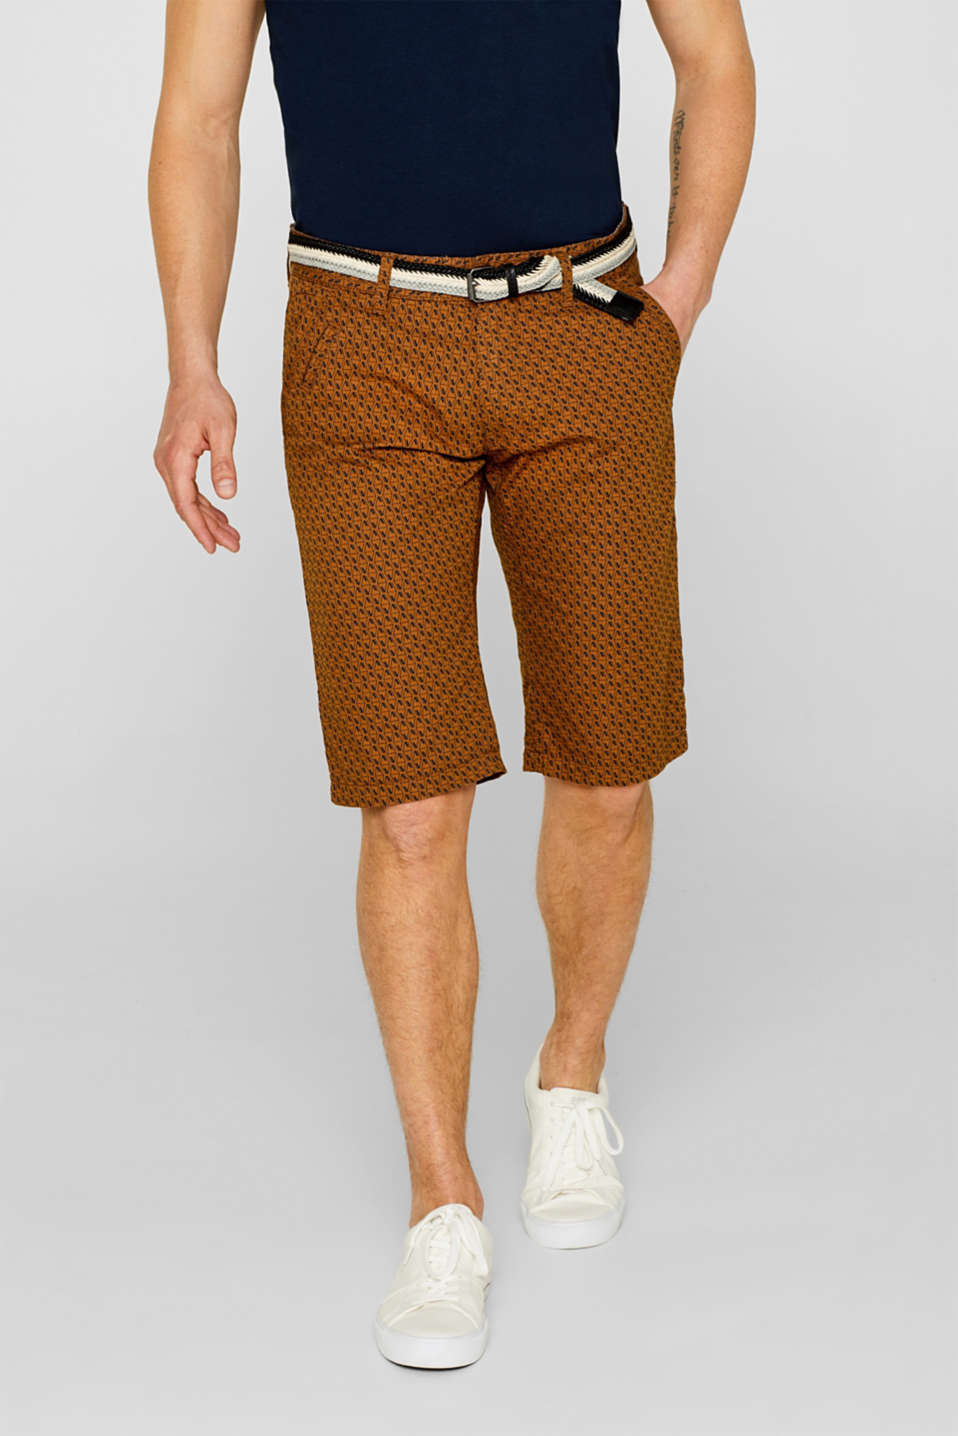 edc - Bermuda shorts with a belt, 100% cotton